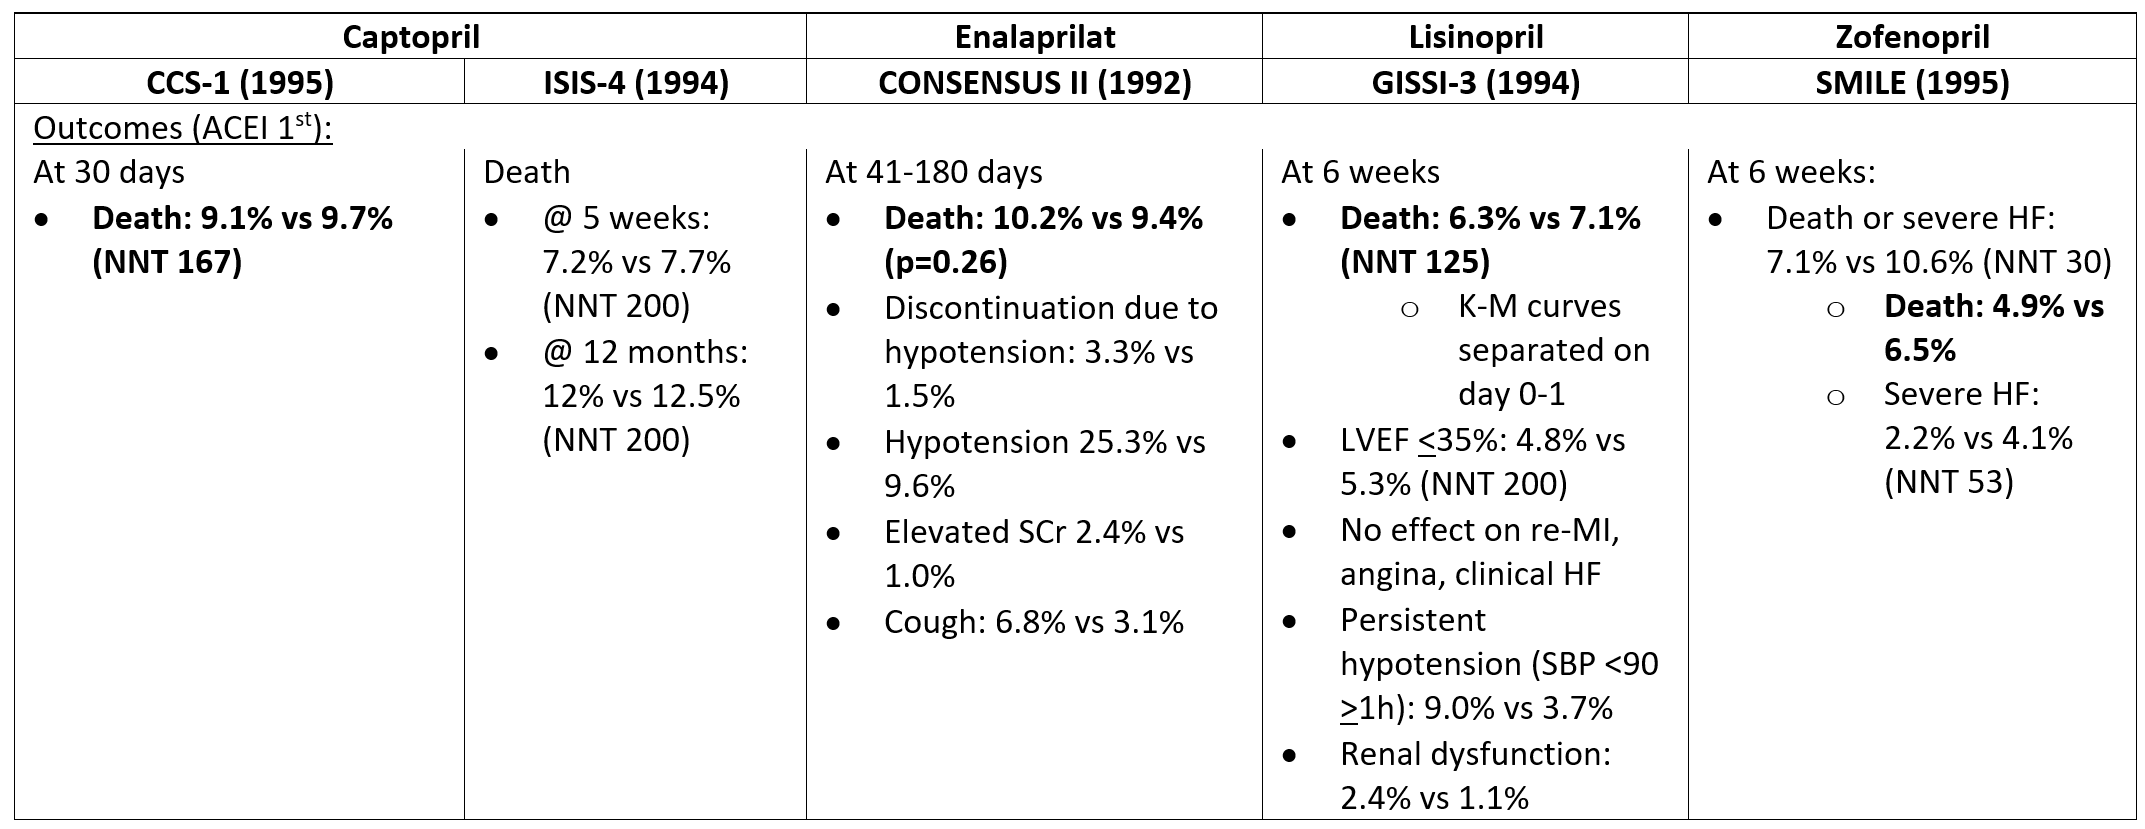 The 5 all-comer trials all evaluated outcomes in the short term, & all but CONSENSUS II (which initiated ACEI therapy as IV) demonstrated a reduction in the incidence of death +/- HF with NNT ~125-200 for death at 4-6 weeks